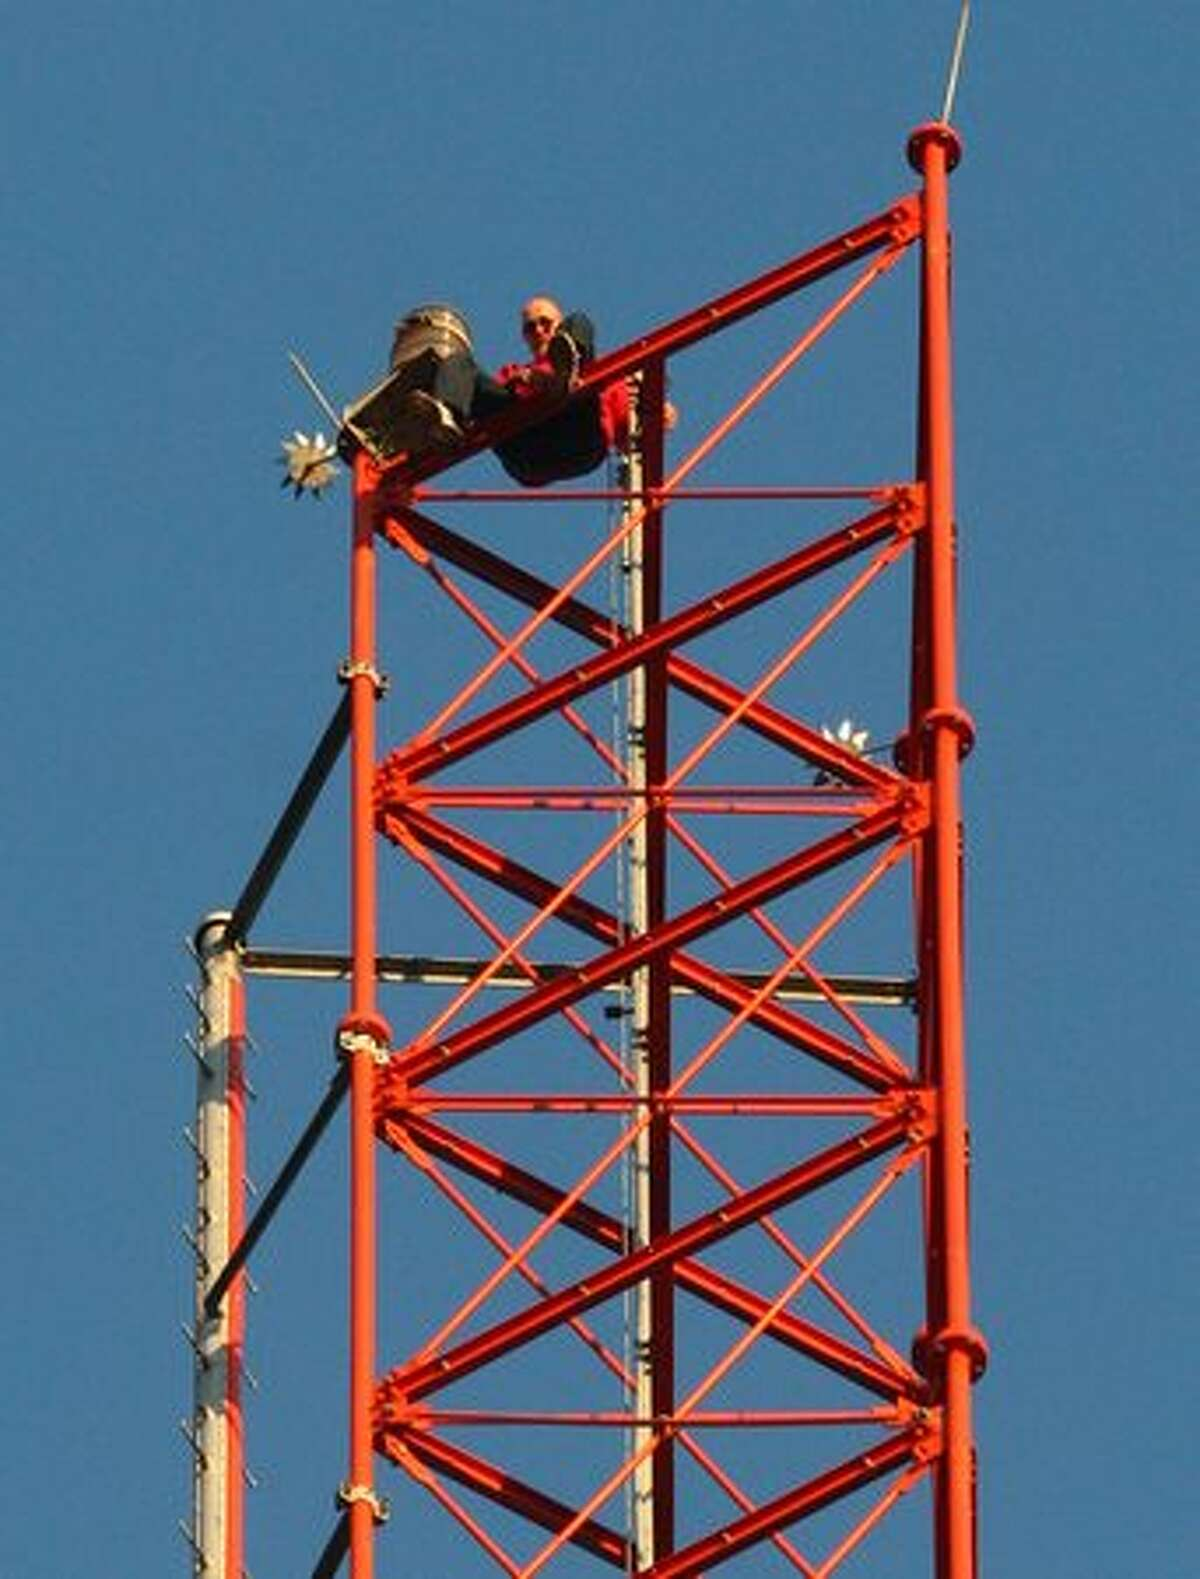 A man sits on the top of the 609-foot KIRO/7 Television tower on Seattle's Queen Anne hill. Hundreds of onlookers gathered to watch as the man climbed to the top of the tower, sat on the top for about 15 minutes, and then climbed back down. He was detained by police after reaching the ground.